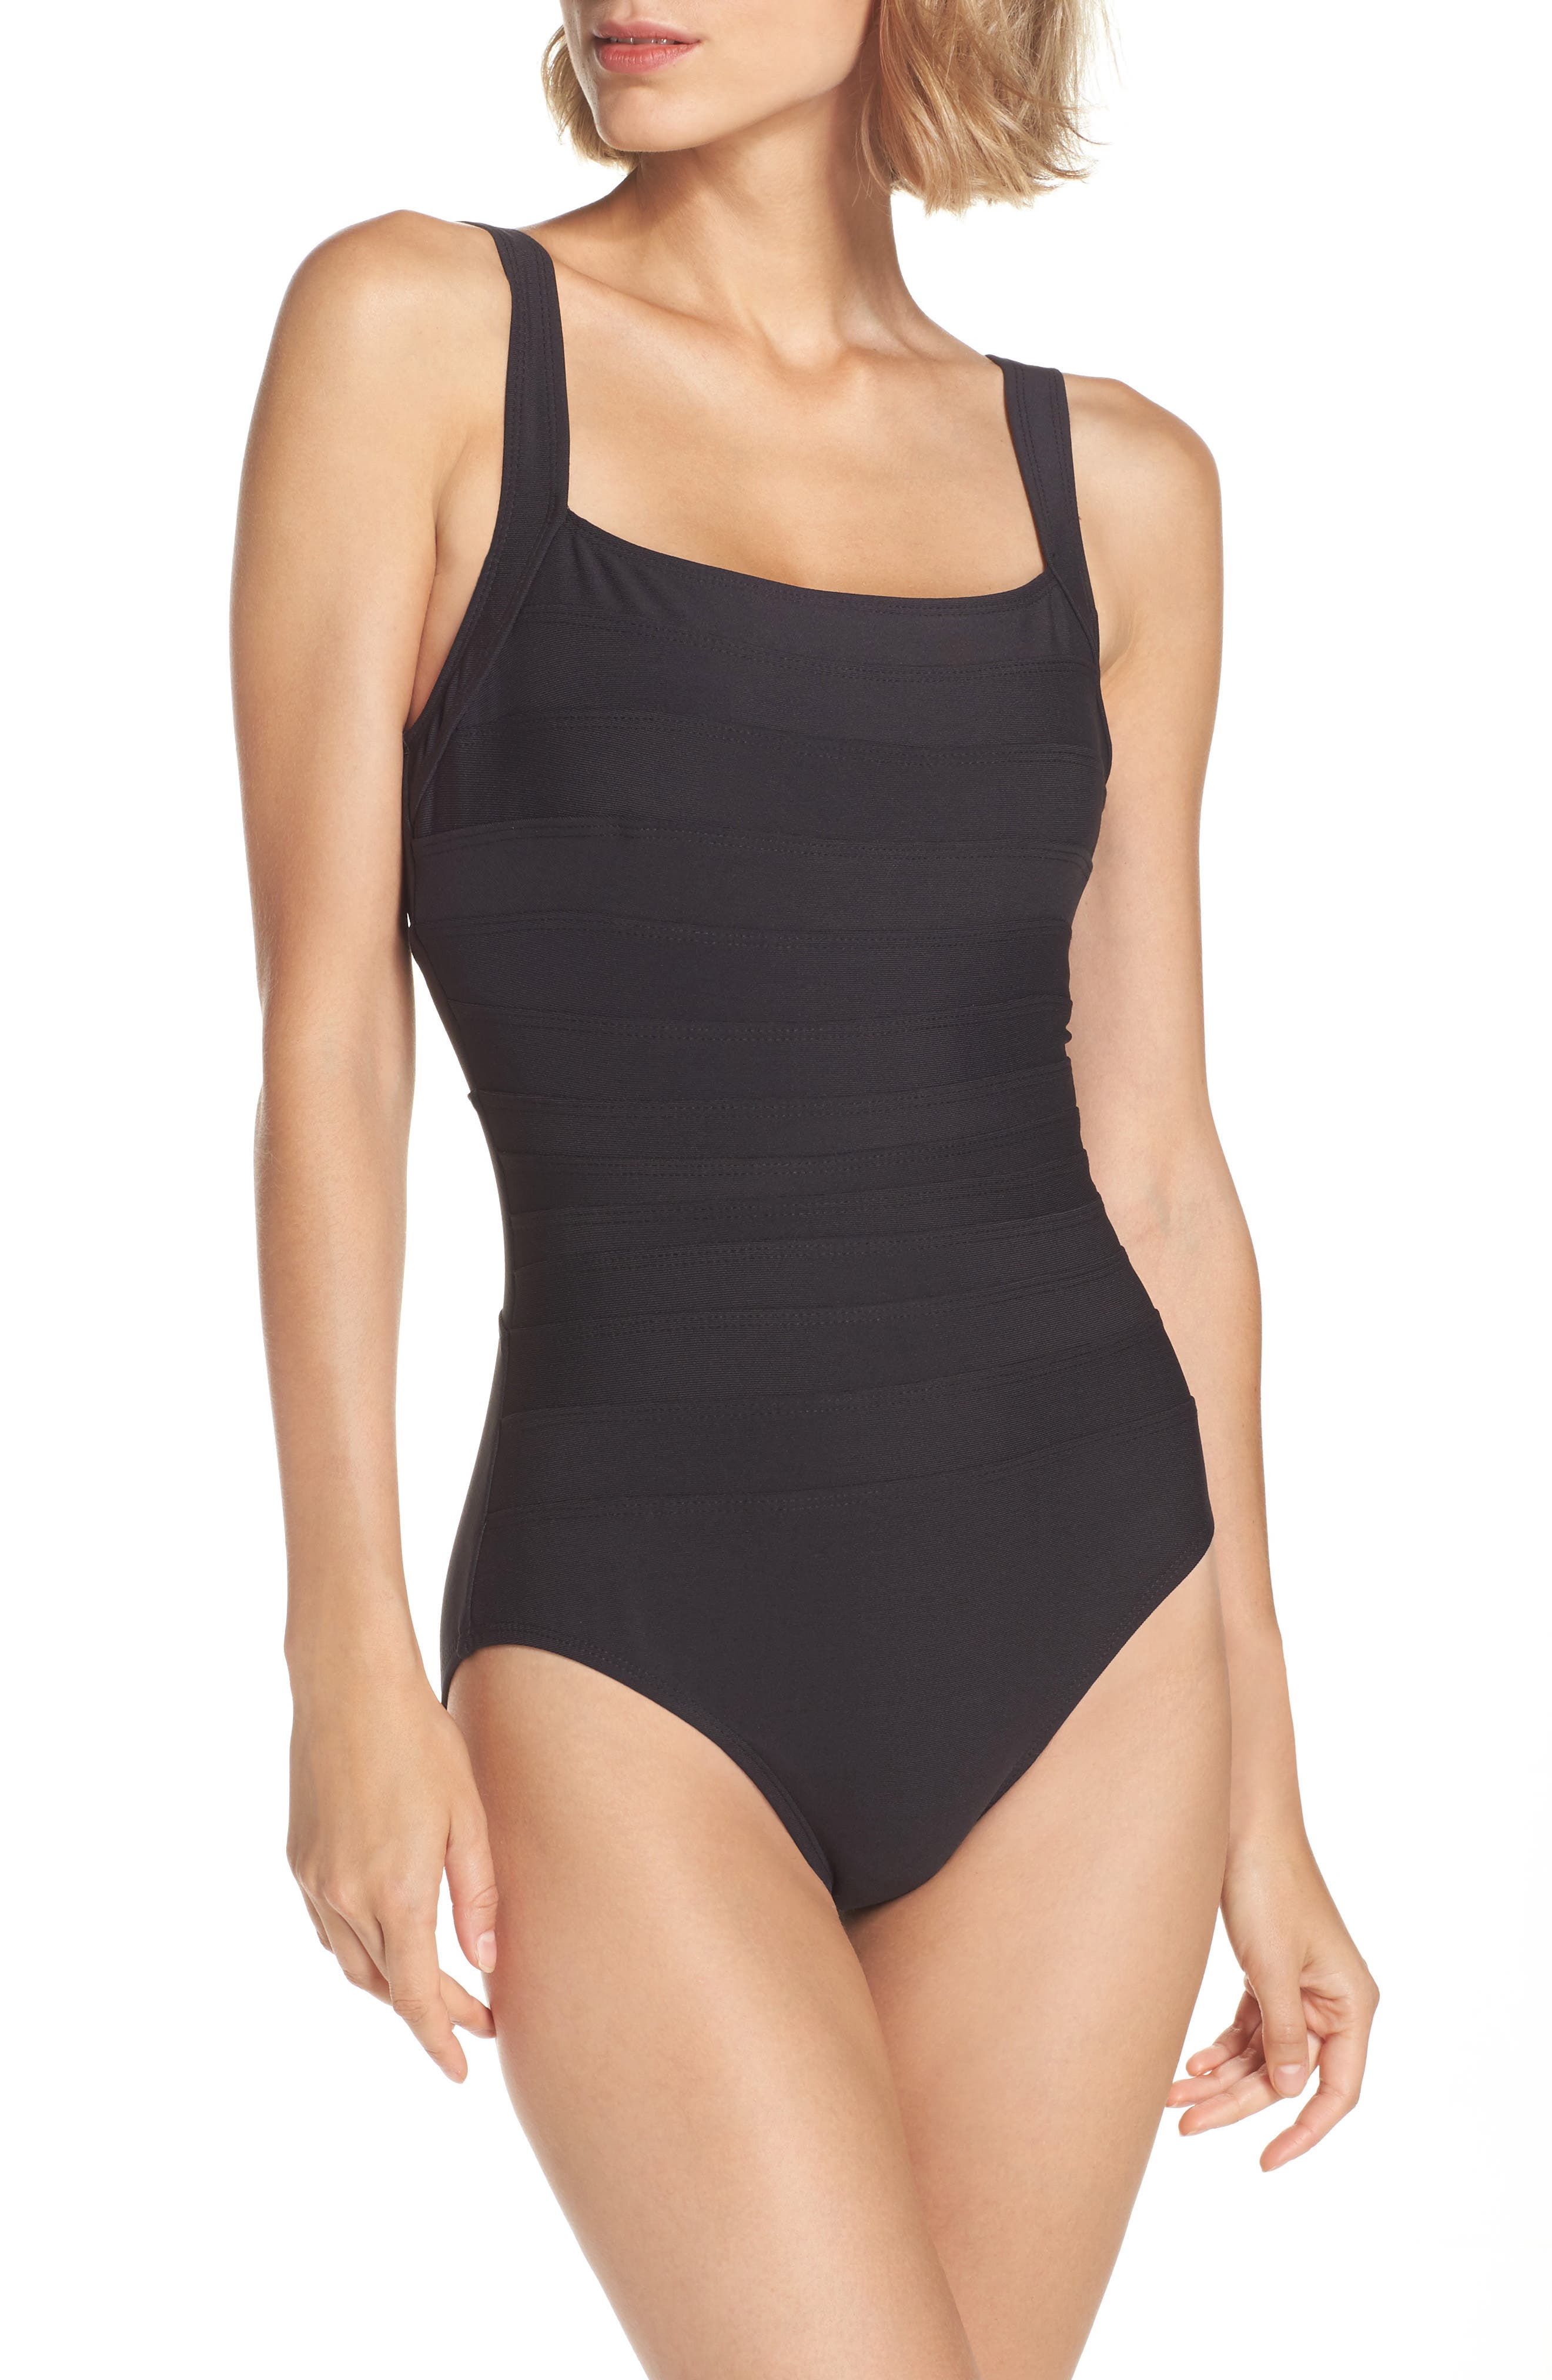 'Spectra' Banded Maillot,                             Alternate thumbnail 2, color,                             BLACK TONES